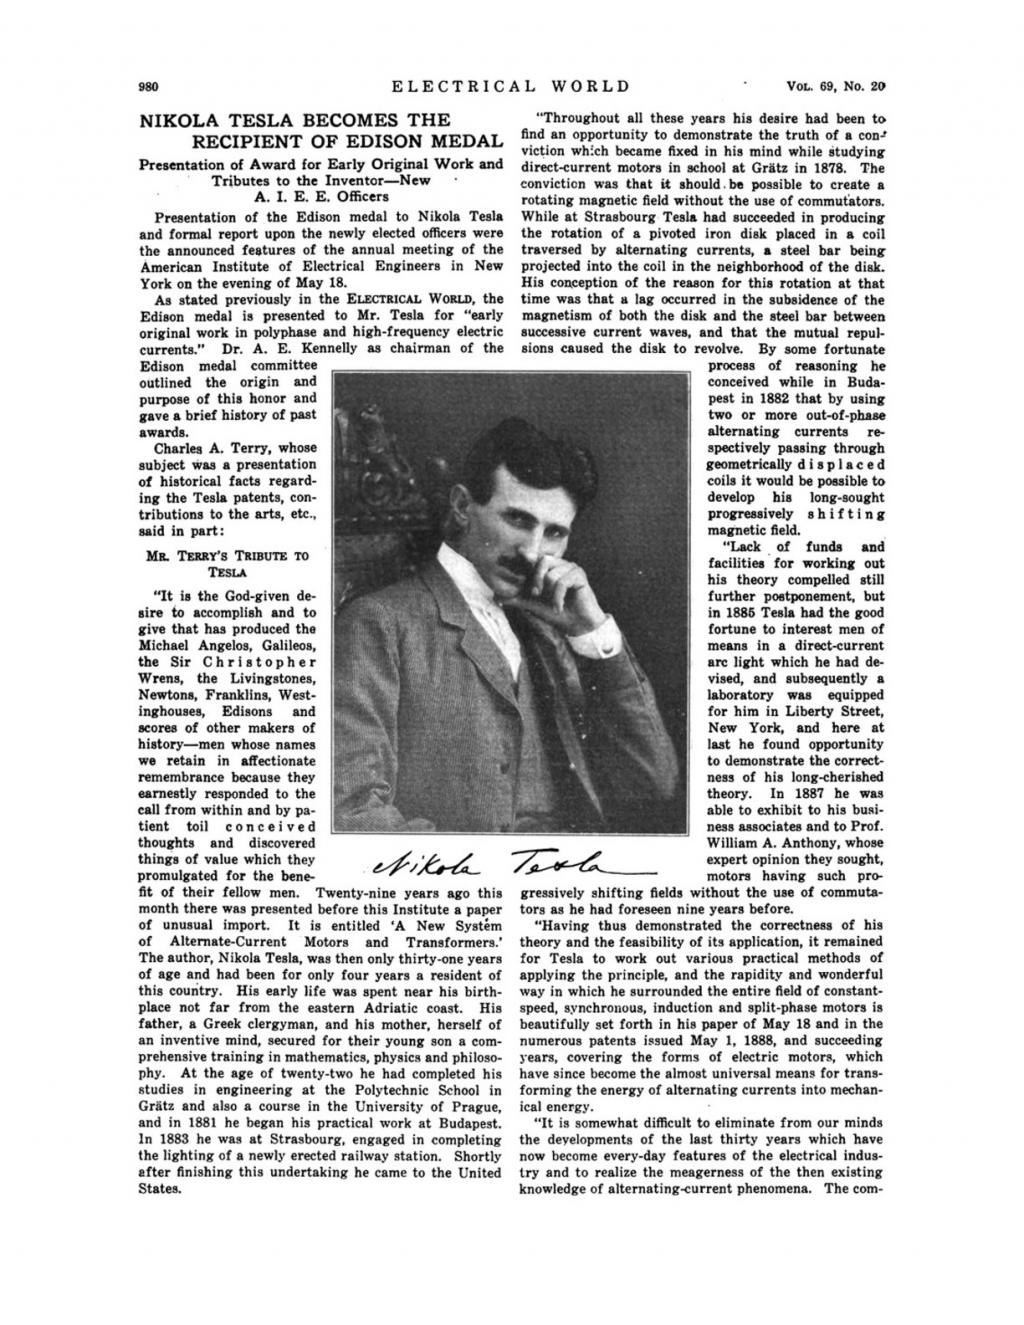 Preview of Nikola Tesla Becomes the Recipient of Edison Medal article